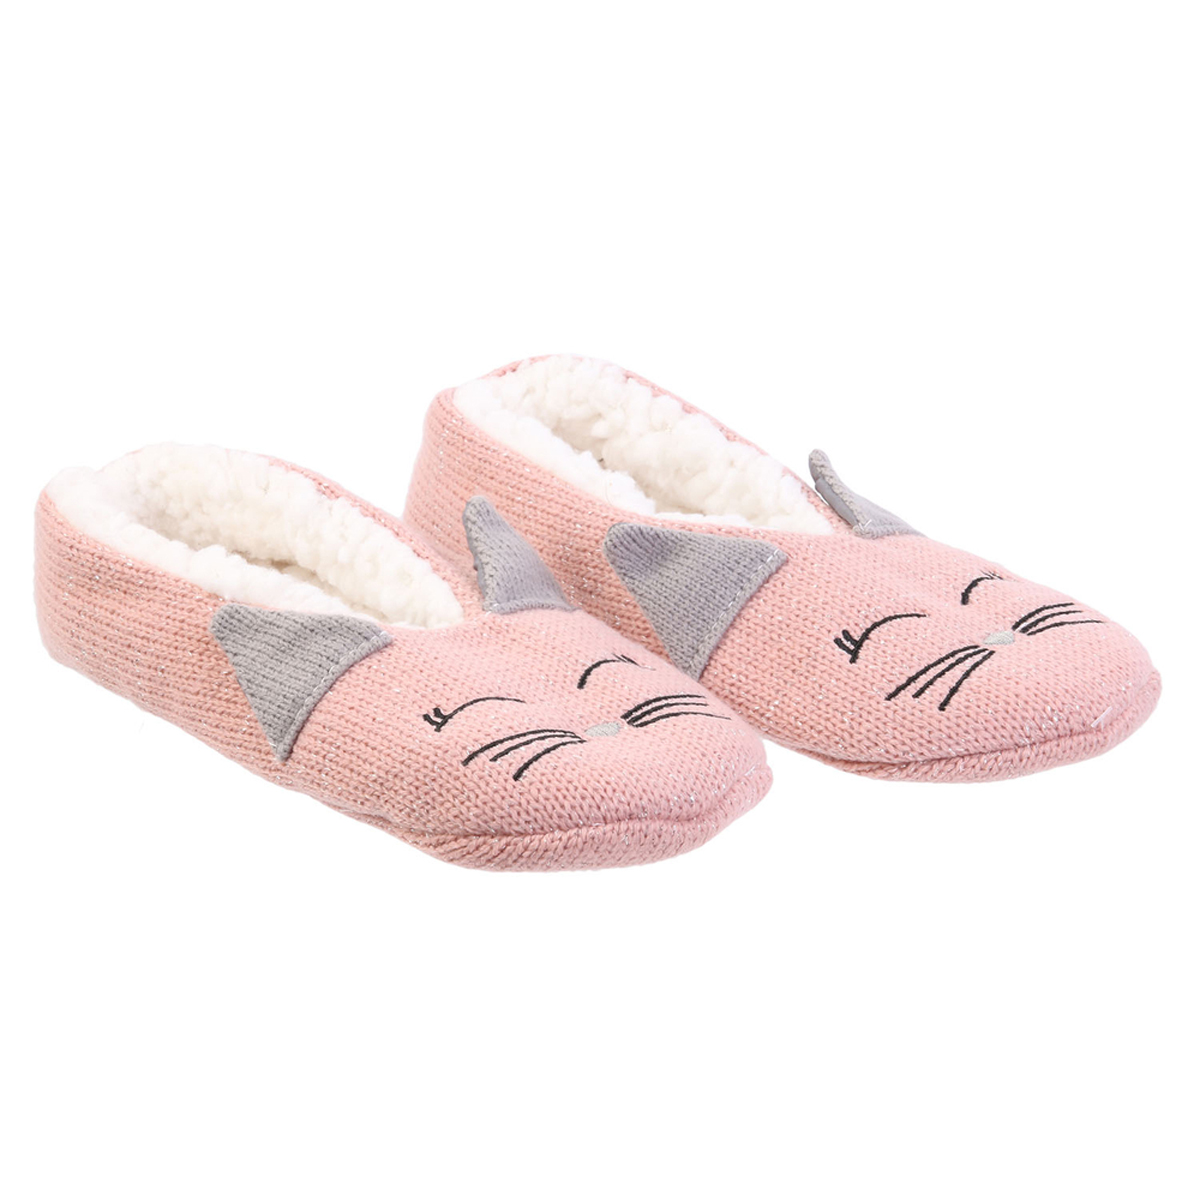 Chausson ballerines \'Chats\' rose - taille 39/41 - [A0046]